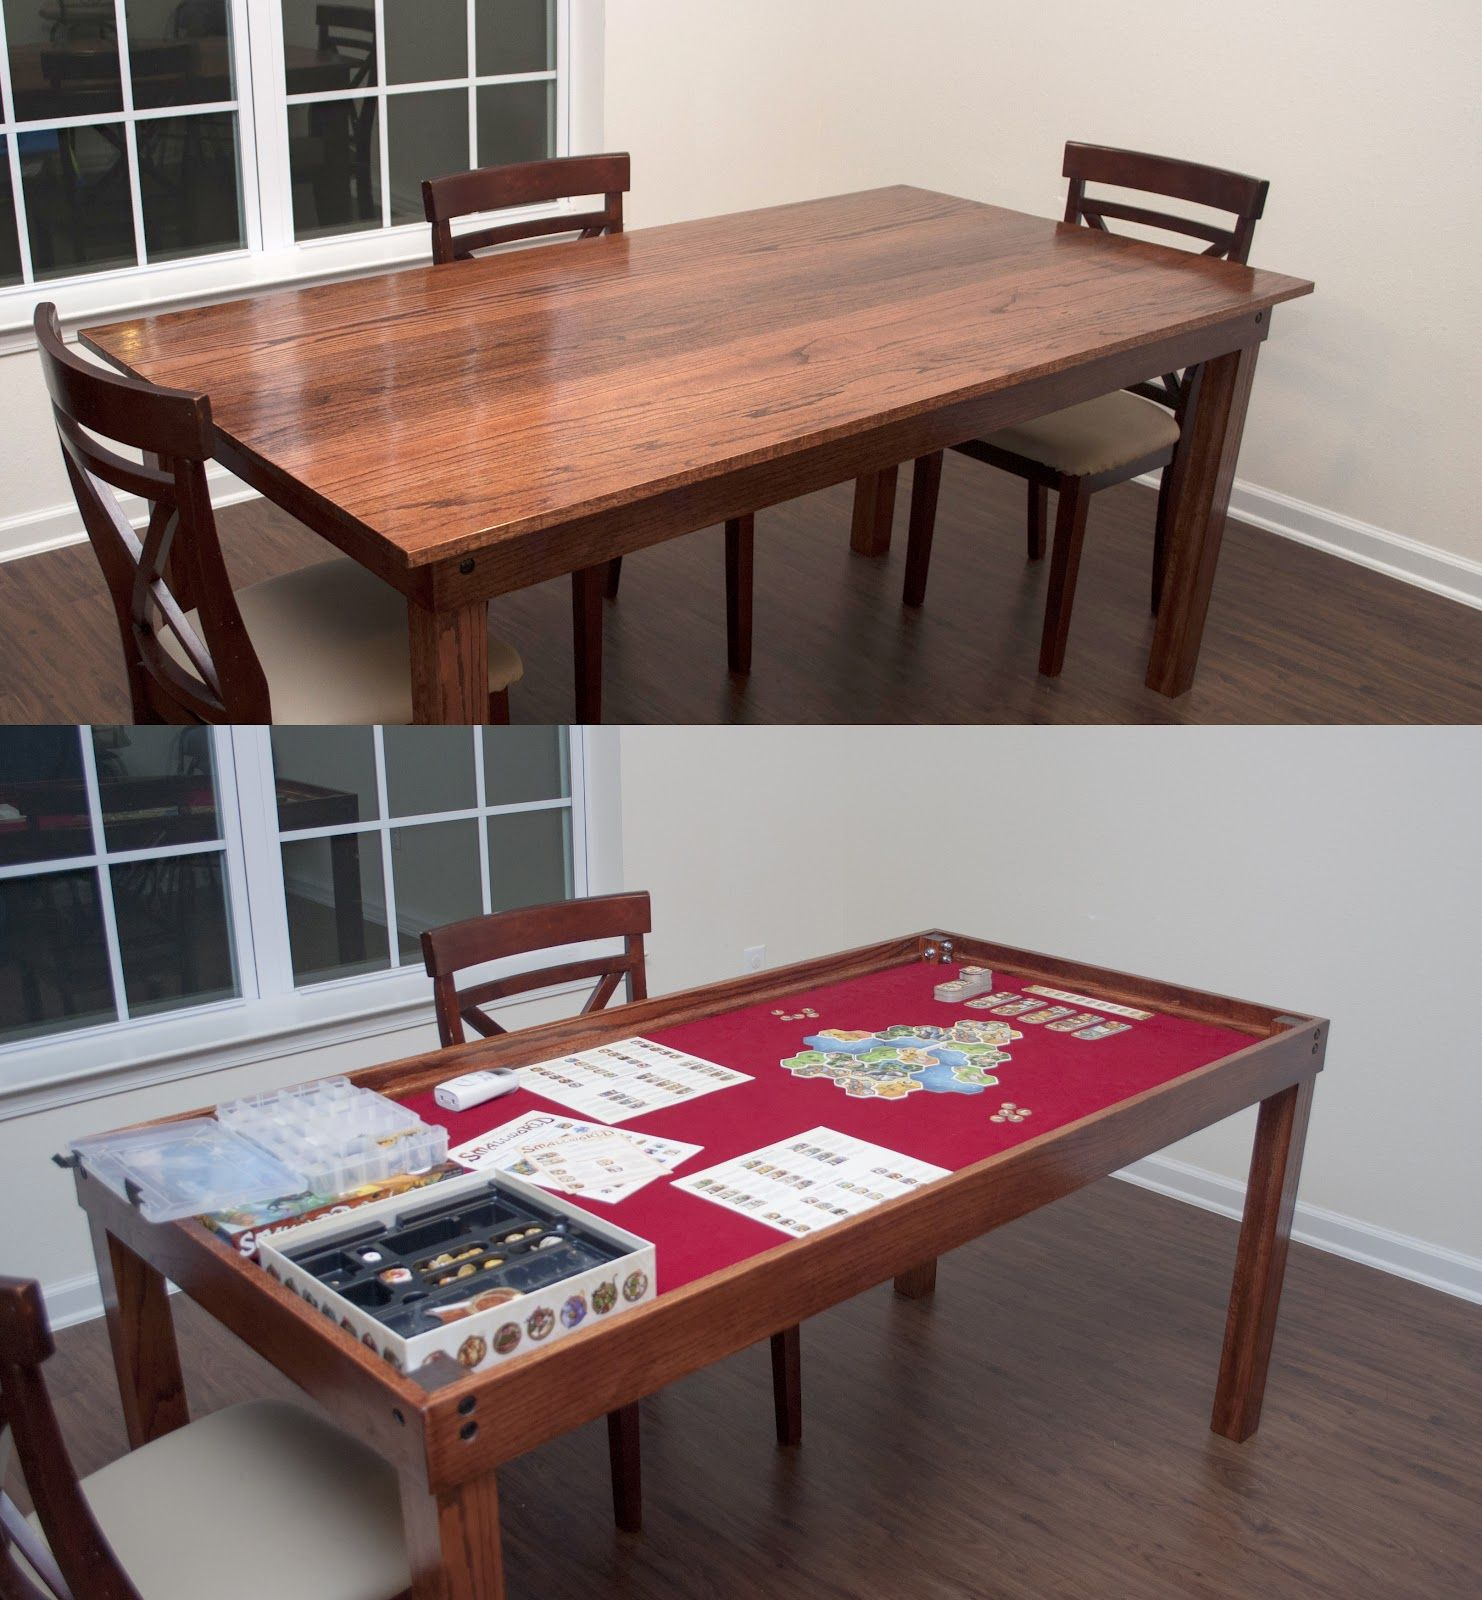 tutorials and ideas including this gaming table project by u0026 fackrell familyu0026